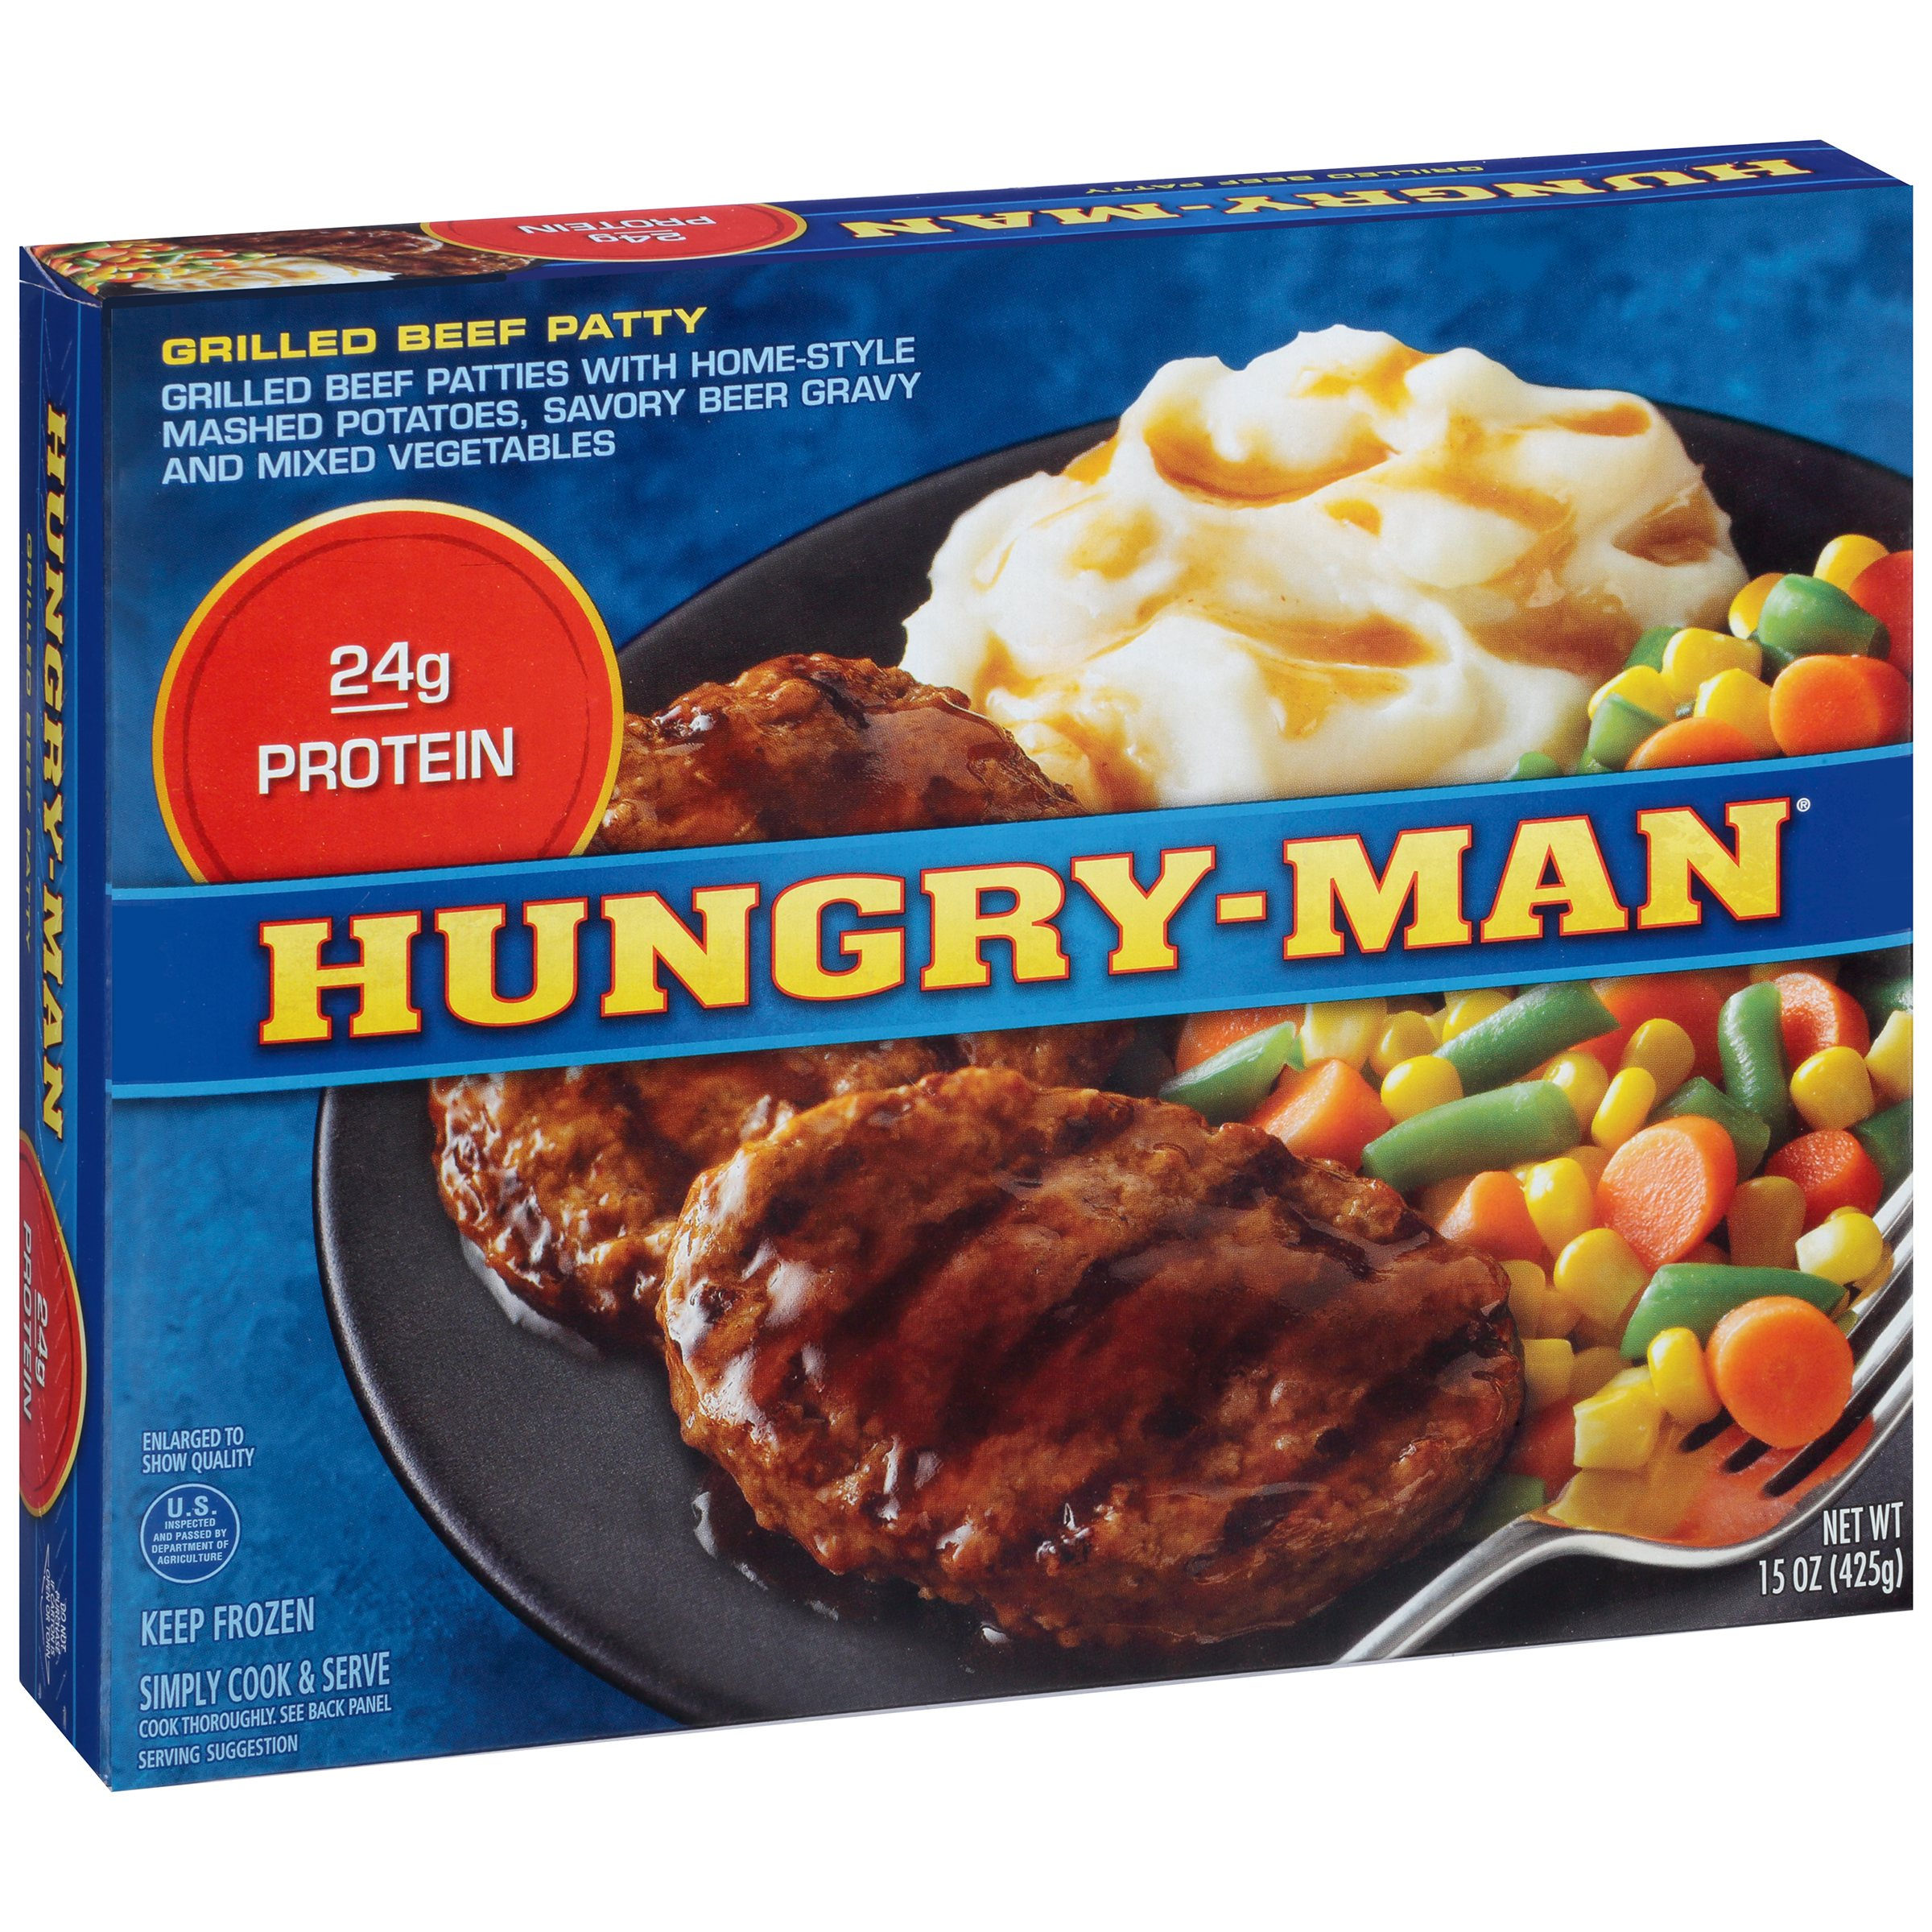 Hungry-Man® Grilled Beef Patty 15 oz. Box